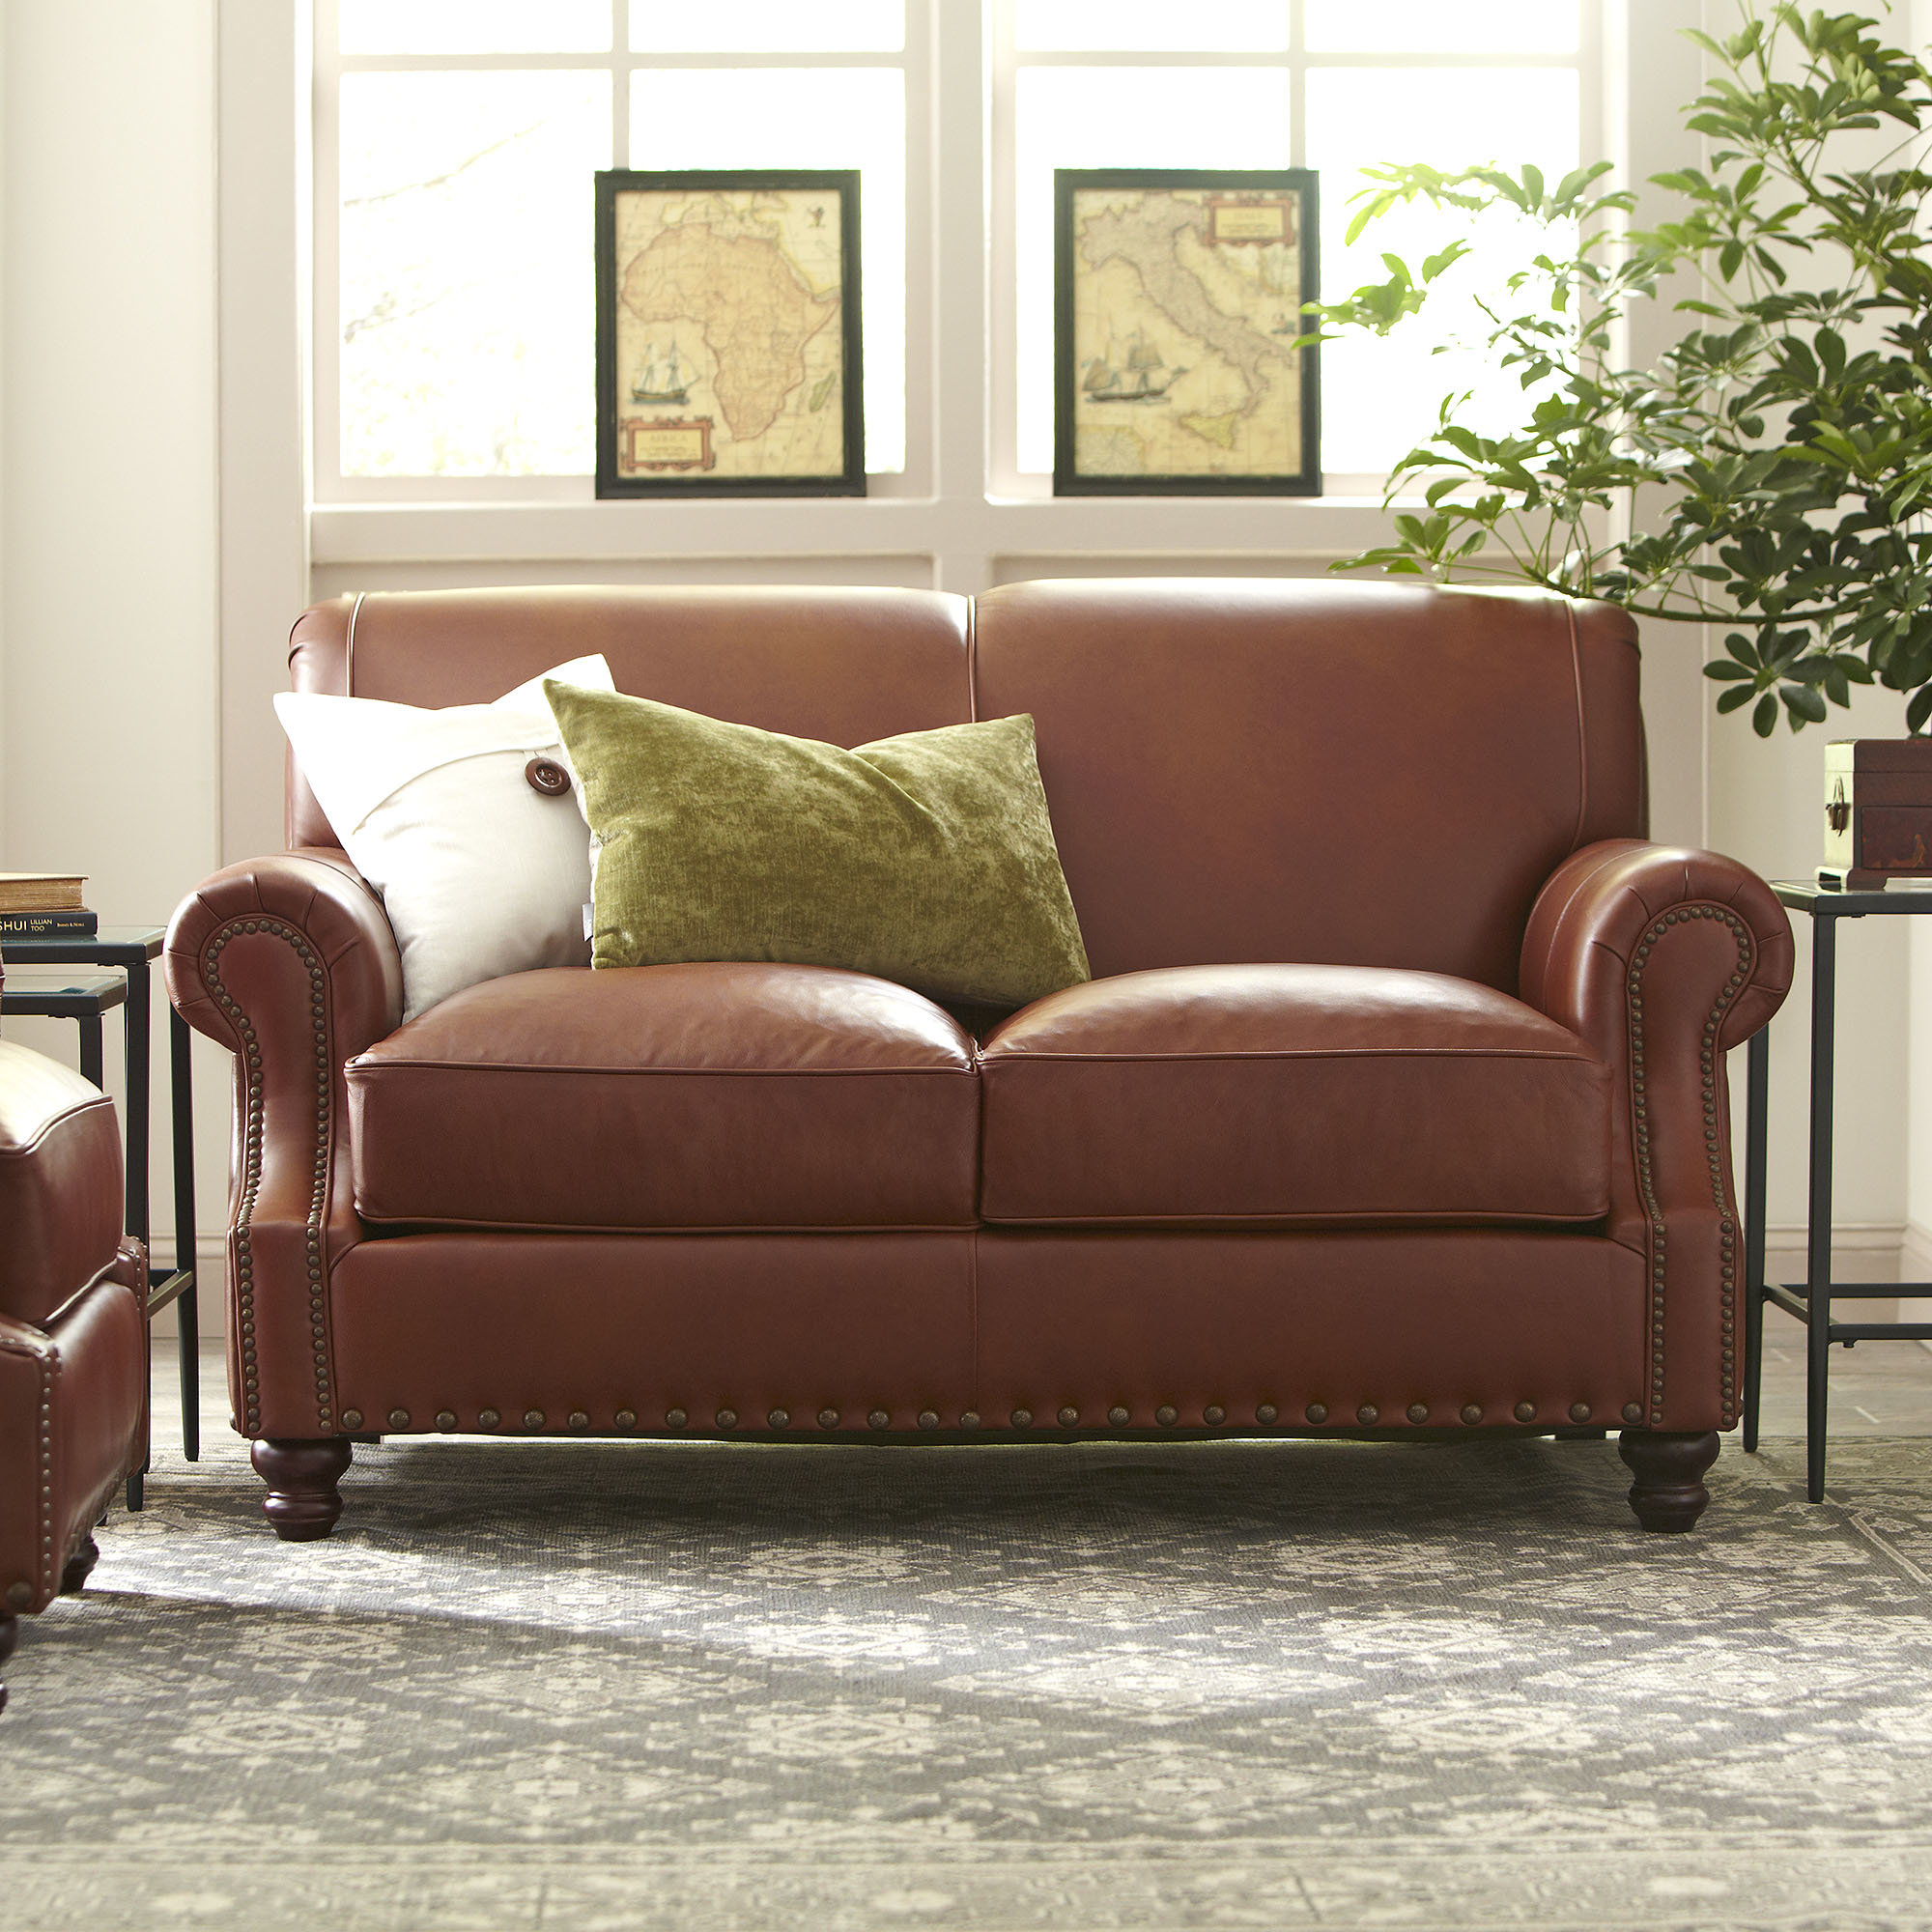 Birch Lane™ Heritage Landry Leather Loveseat & Reviews | Birch Lane Within Landry Sofa Chairs (Image 6 of 20)